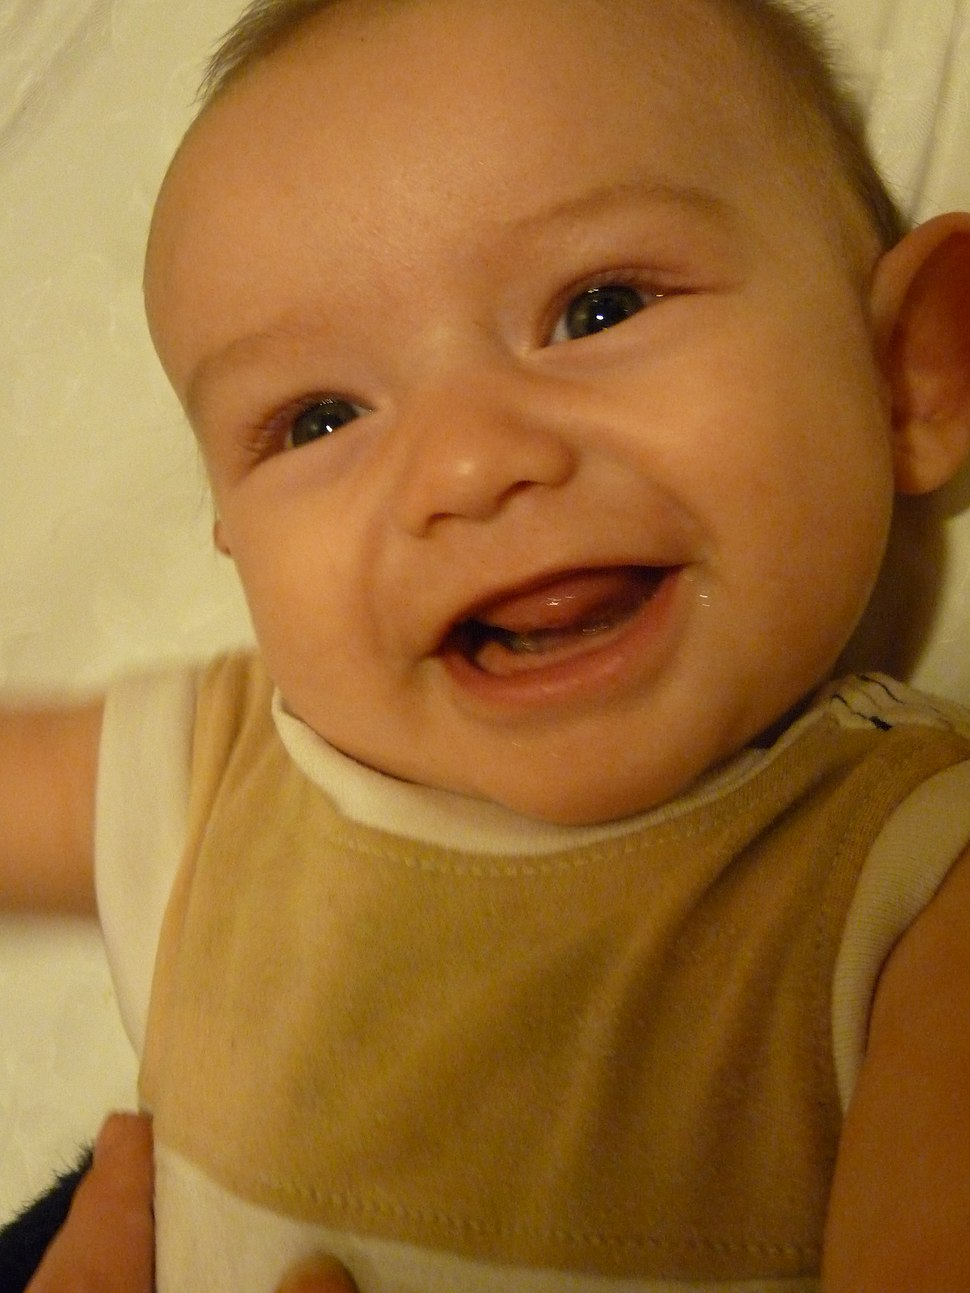 3.5-month-old baby laughing